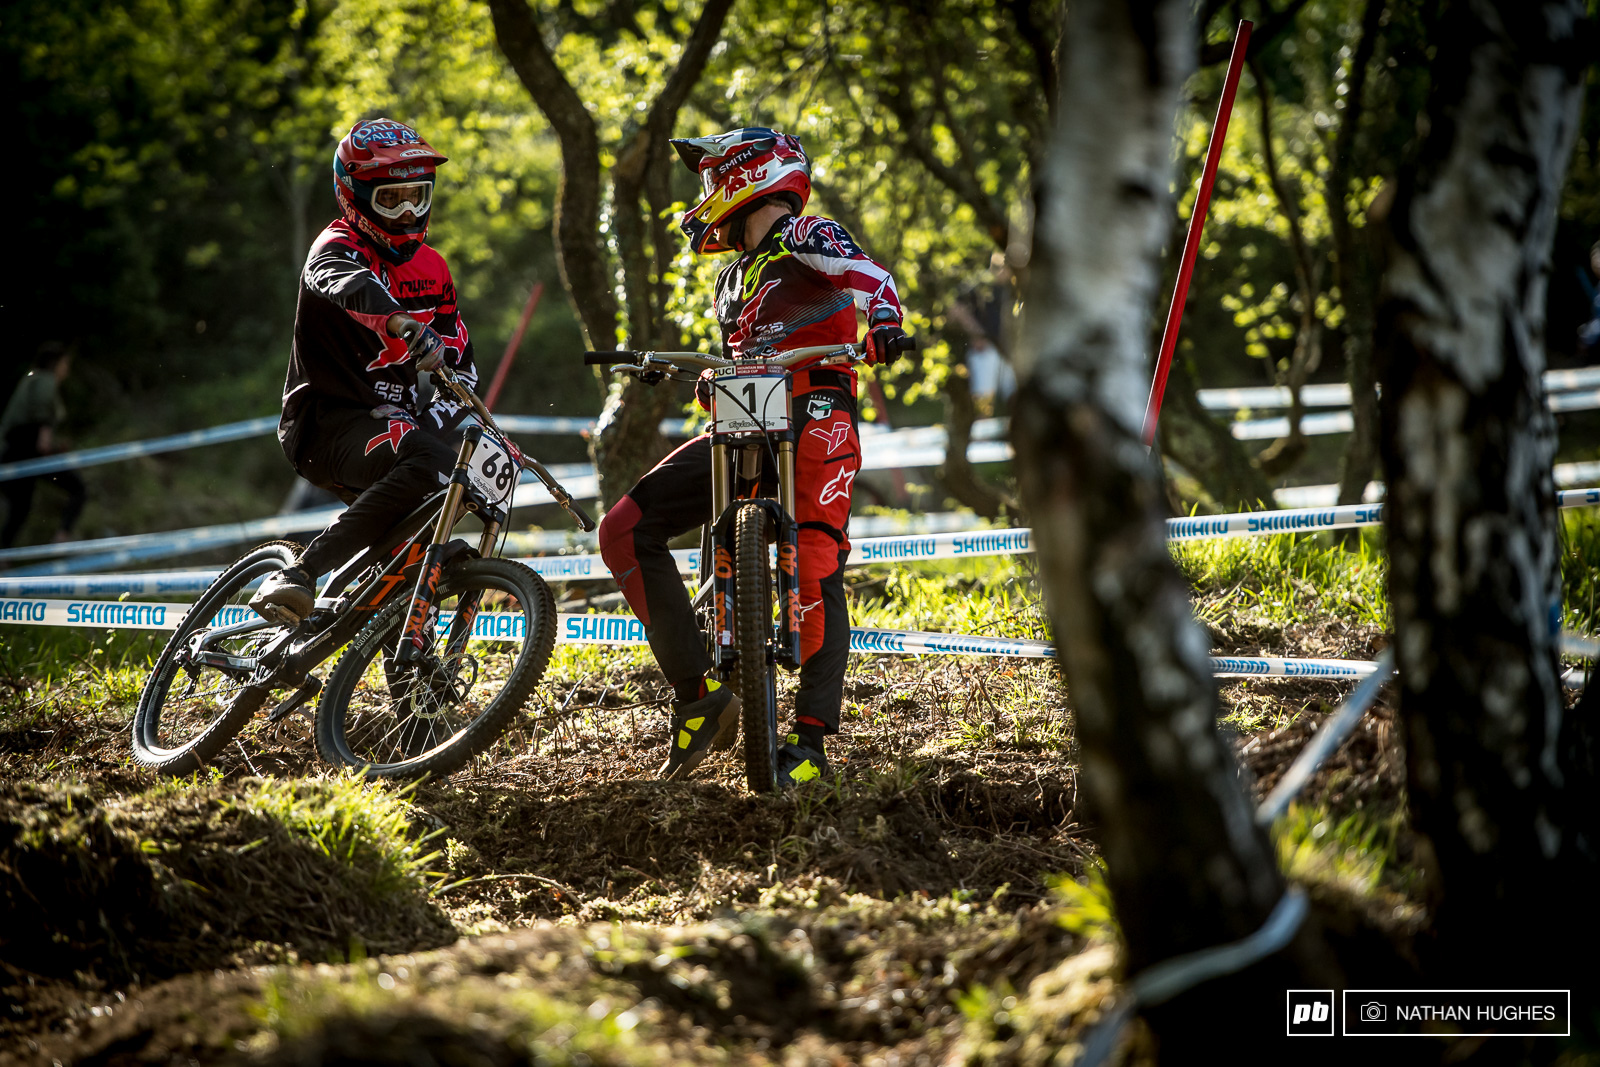 Reunited team mates Mullaly and Gwin talk lines on Aaron s only practice run of the day.